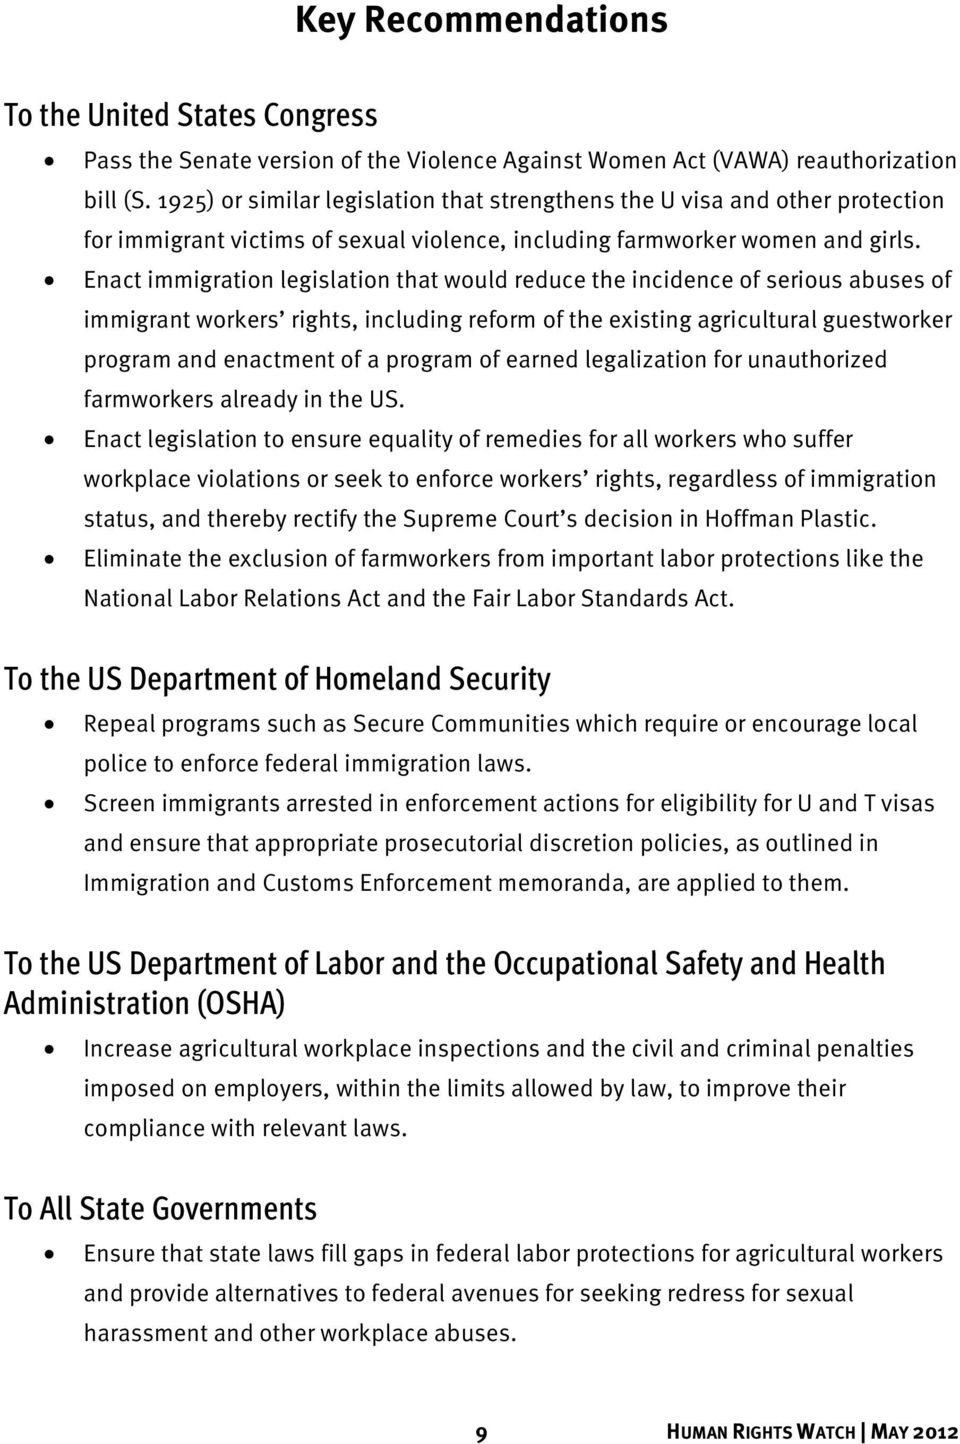 Enact immigration legislation that would reduce the incidence of serious abuses of immigrant workers rights, including reform of the existing agricultural guestworker program and enactment of a